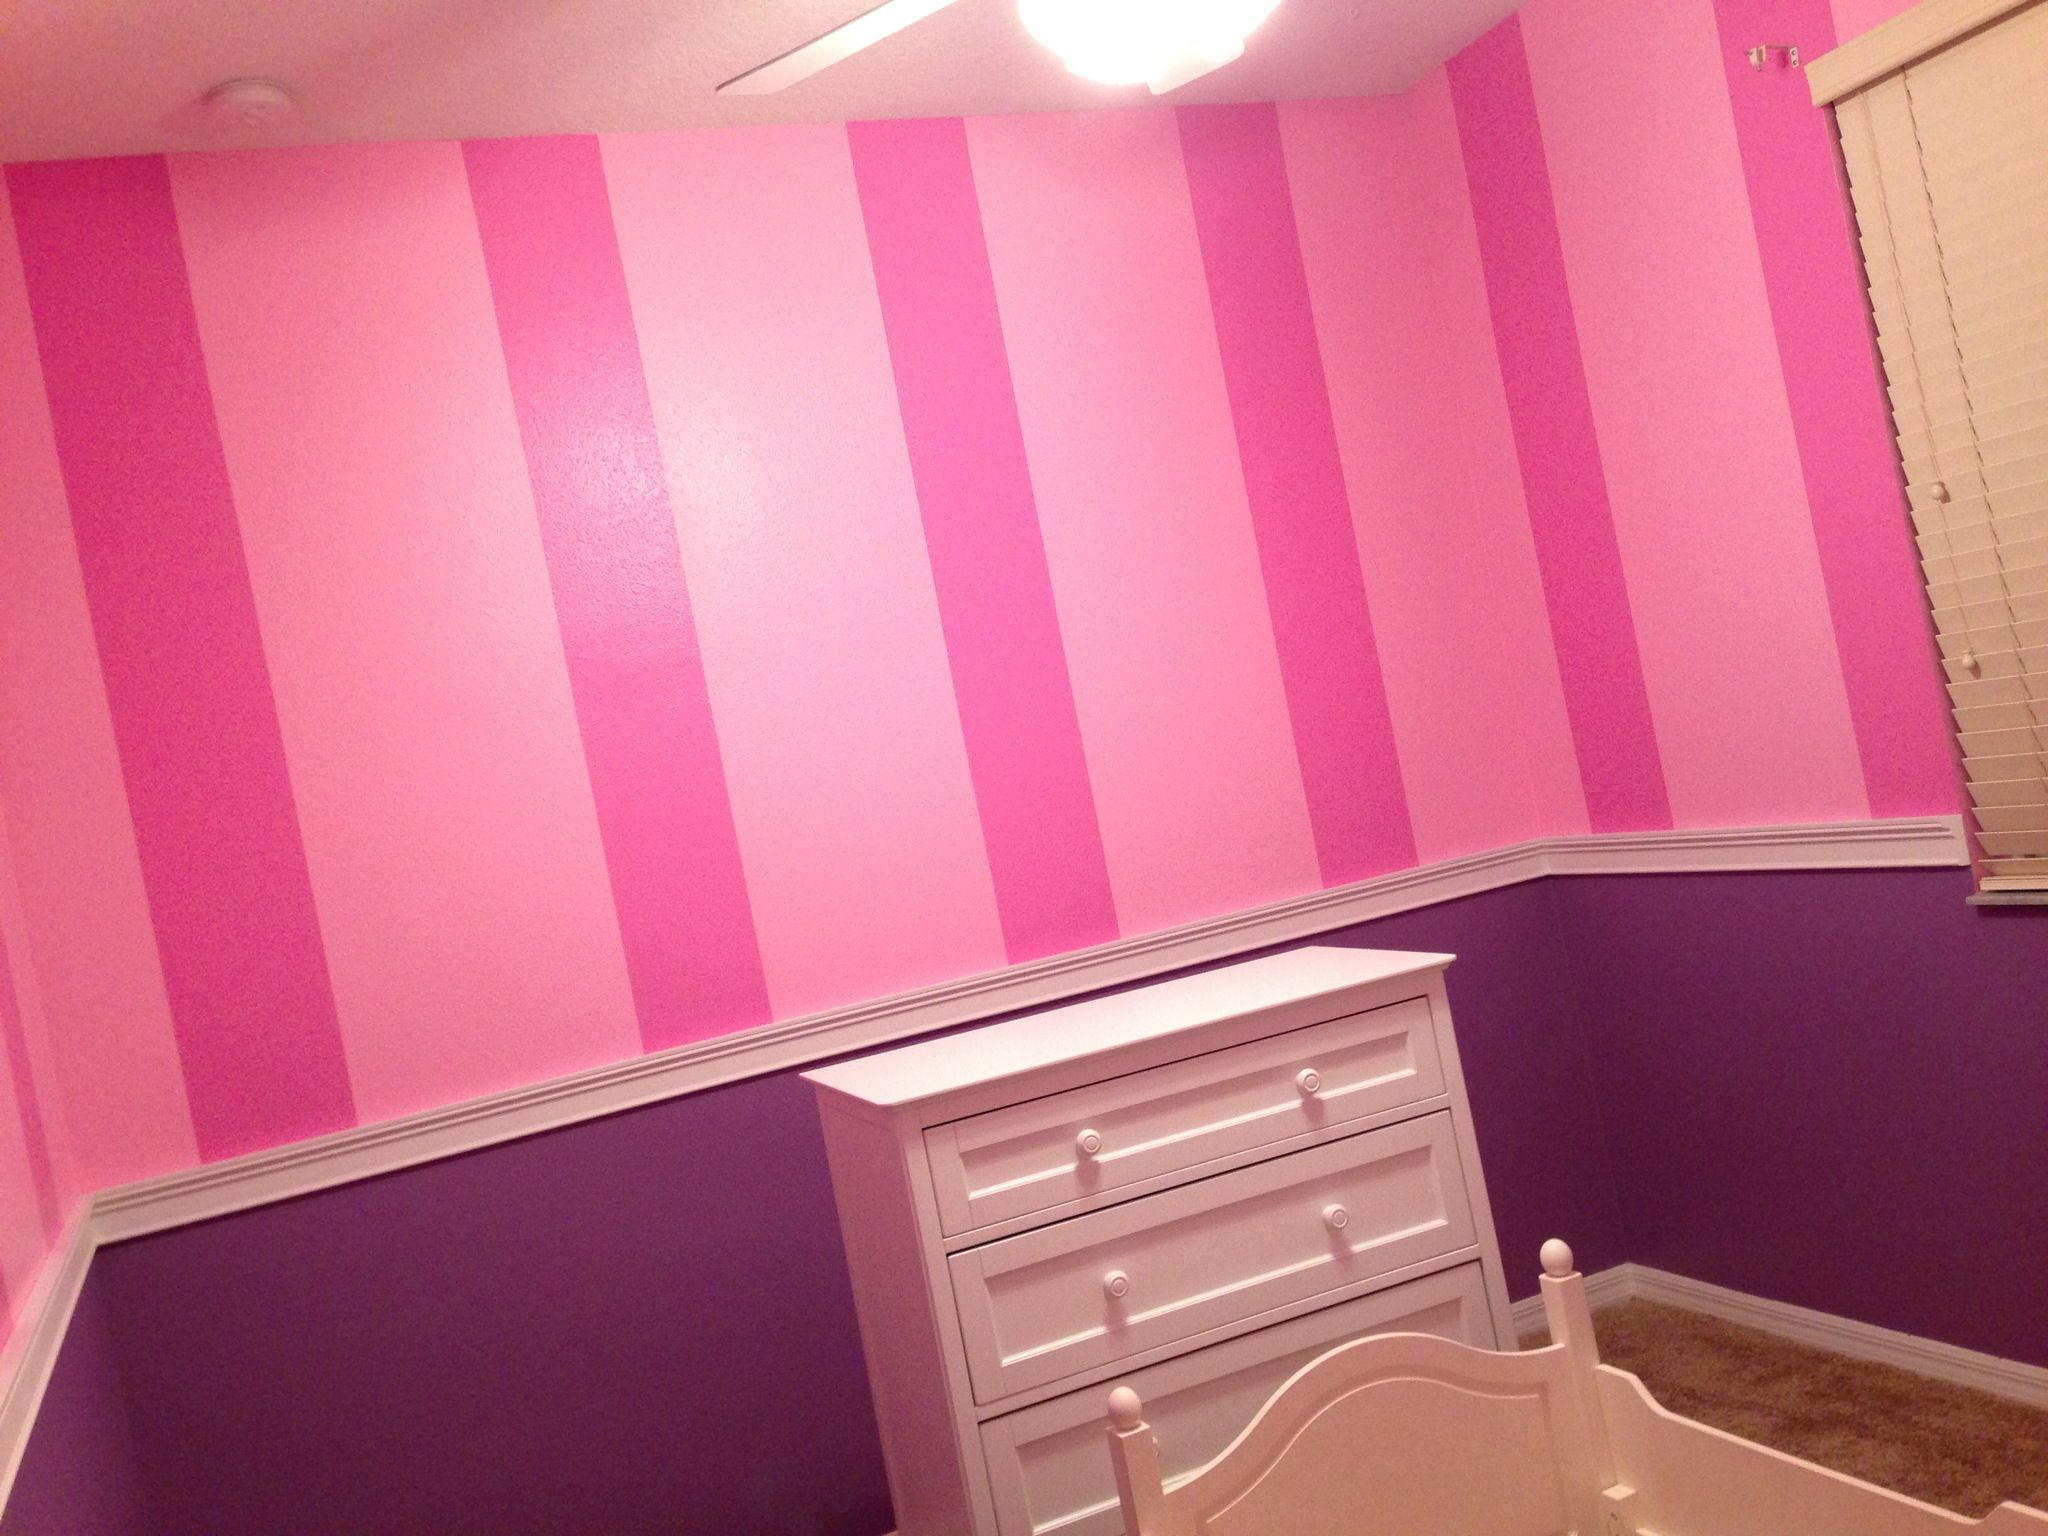 pink and purple striped wall decor ideas - Google Search | Kids ...